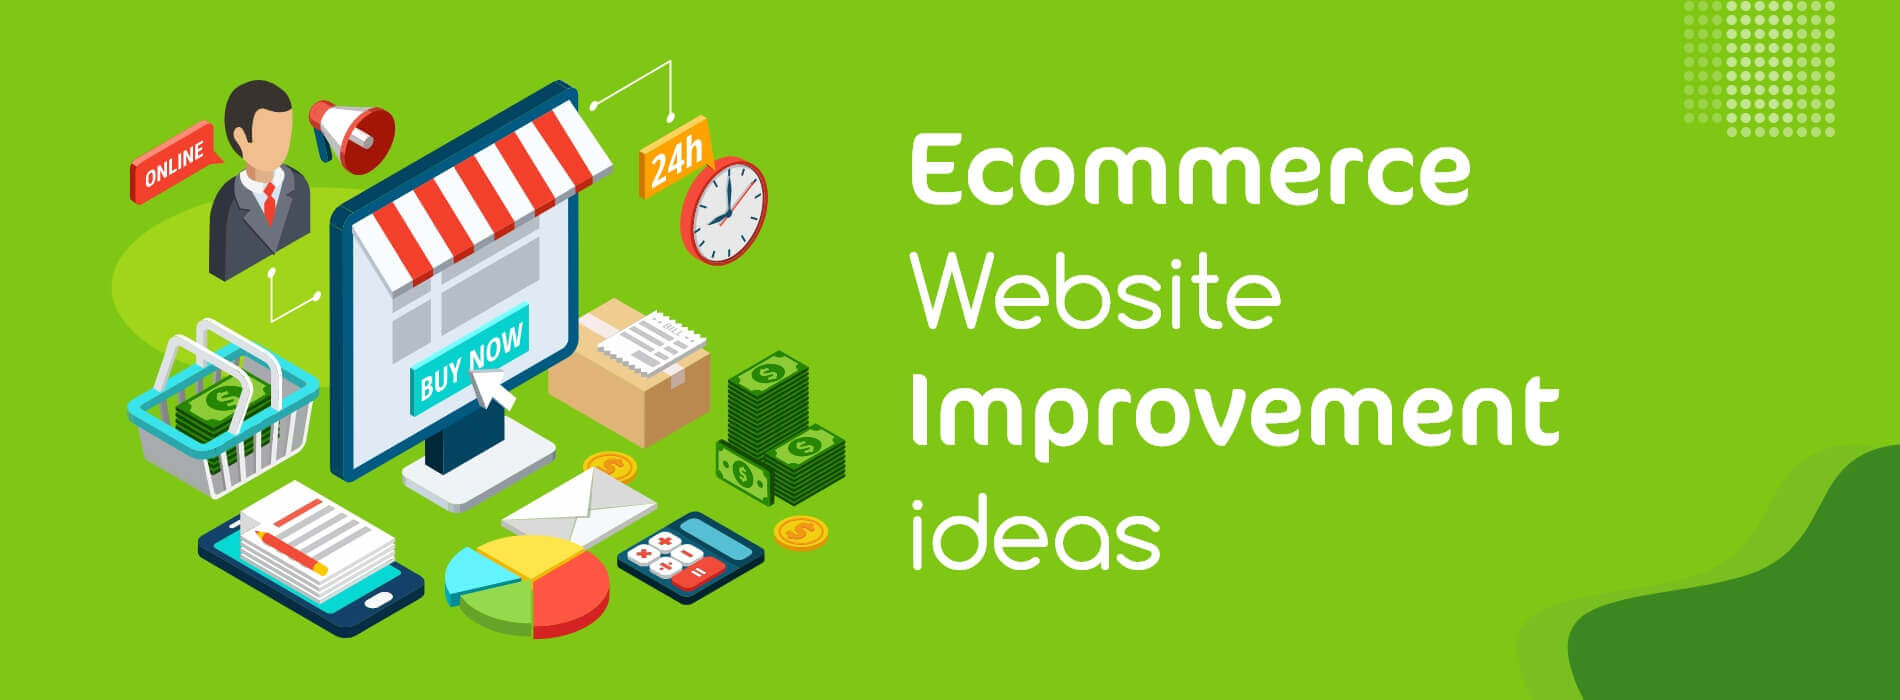 eCommerce Website Improvement Ideas to Boost Engagement and Sales